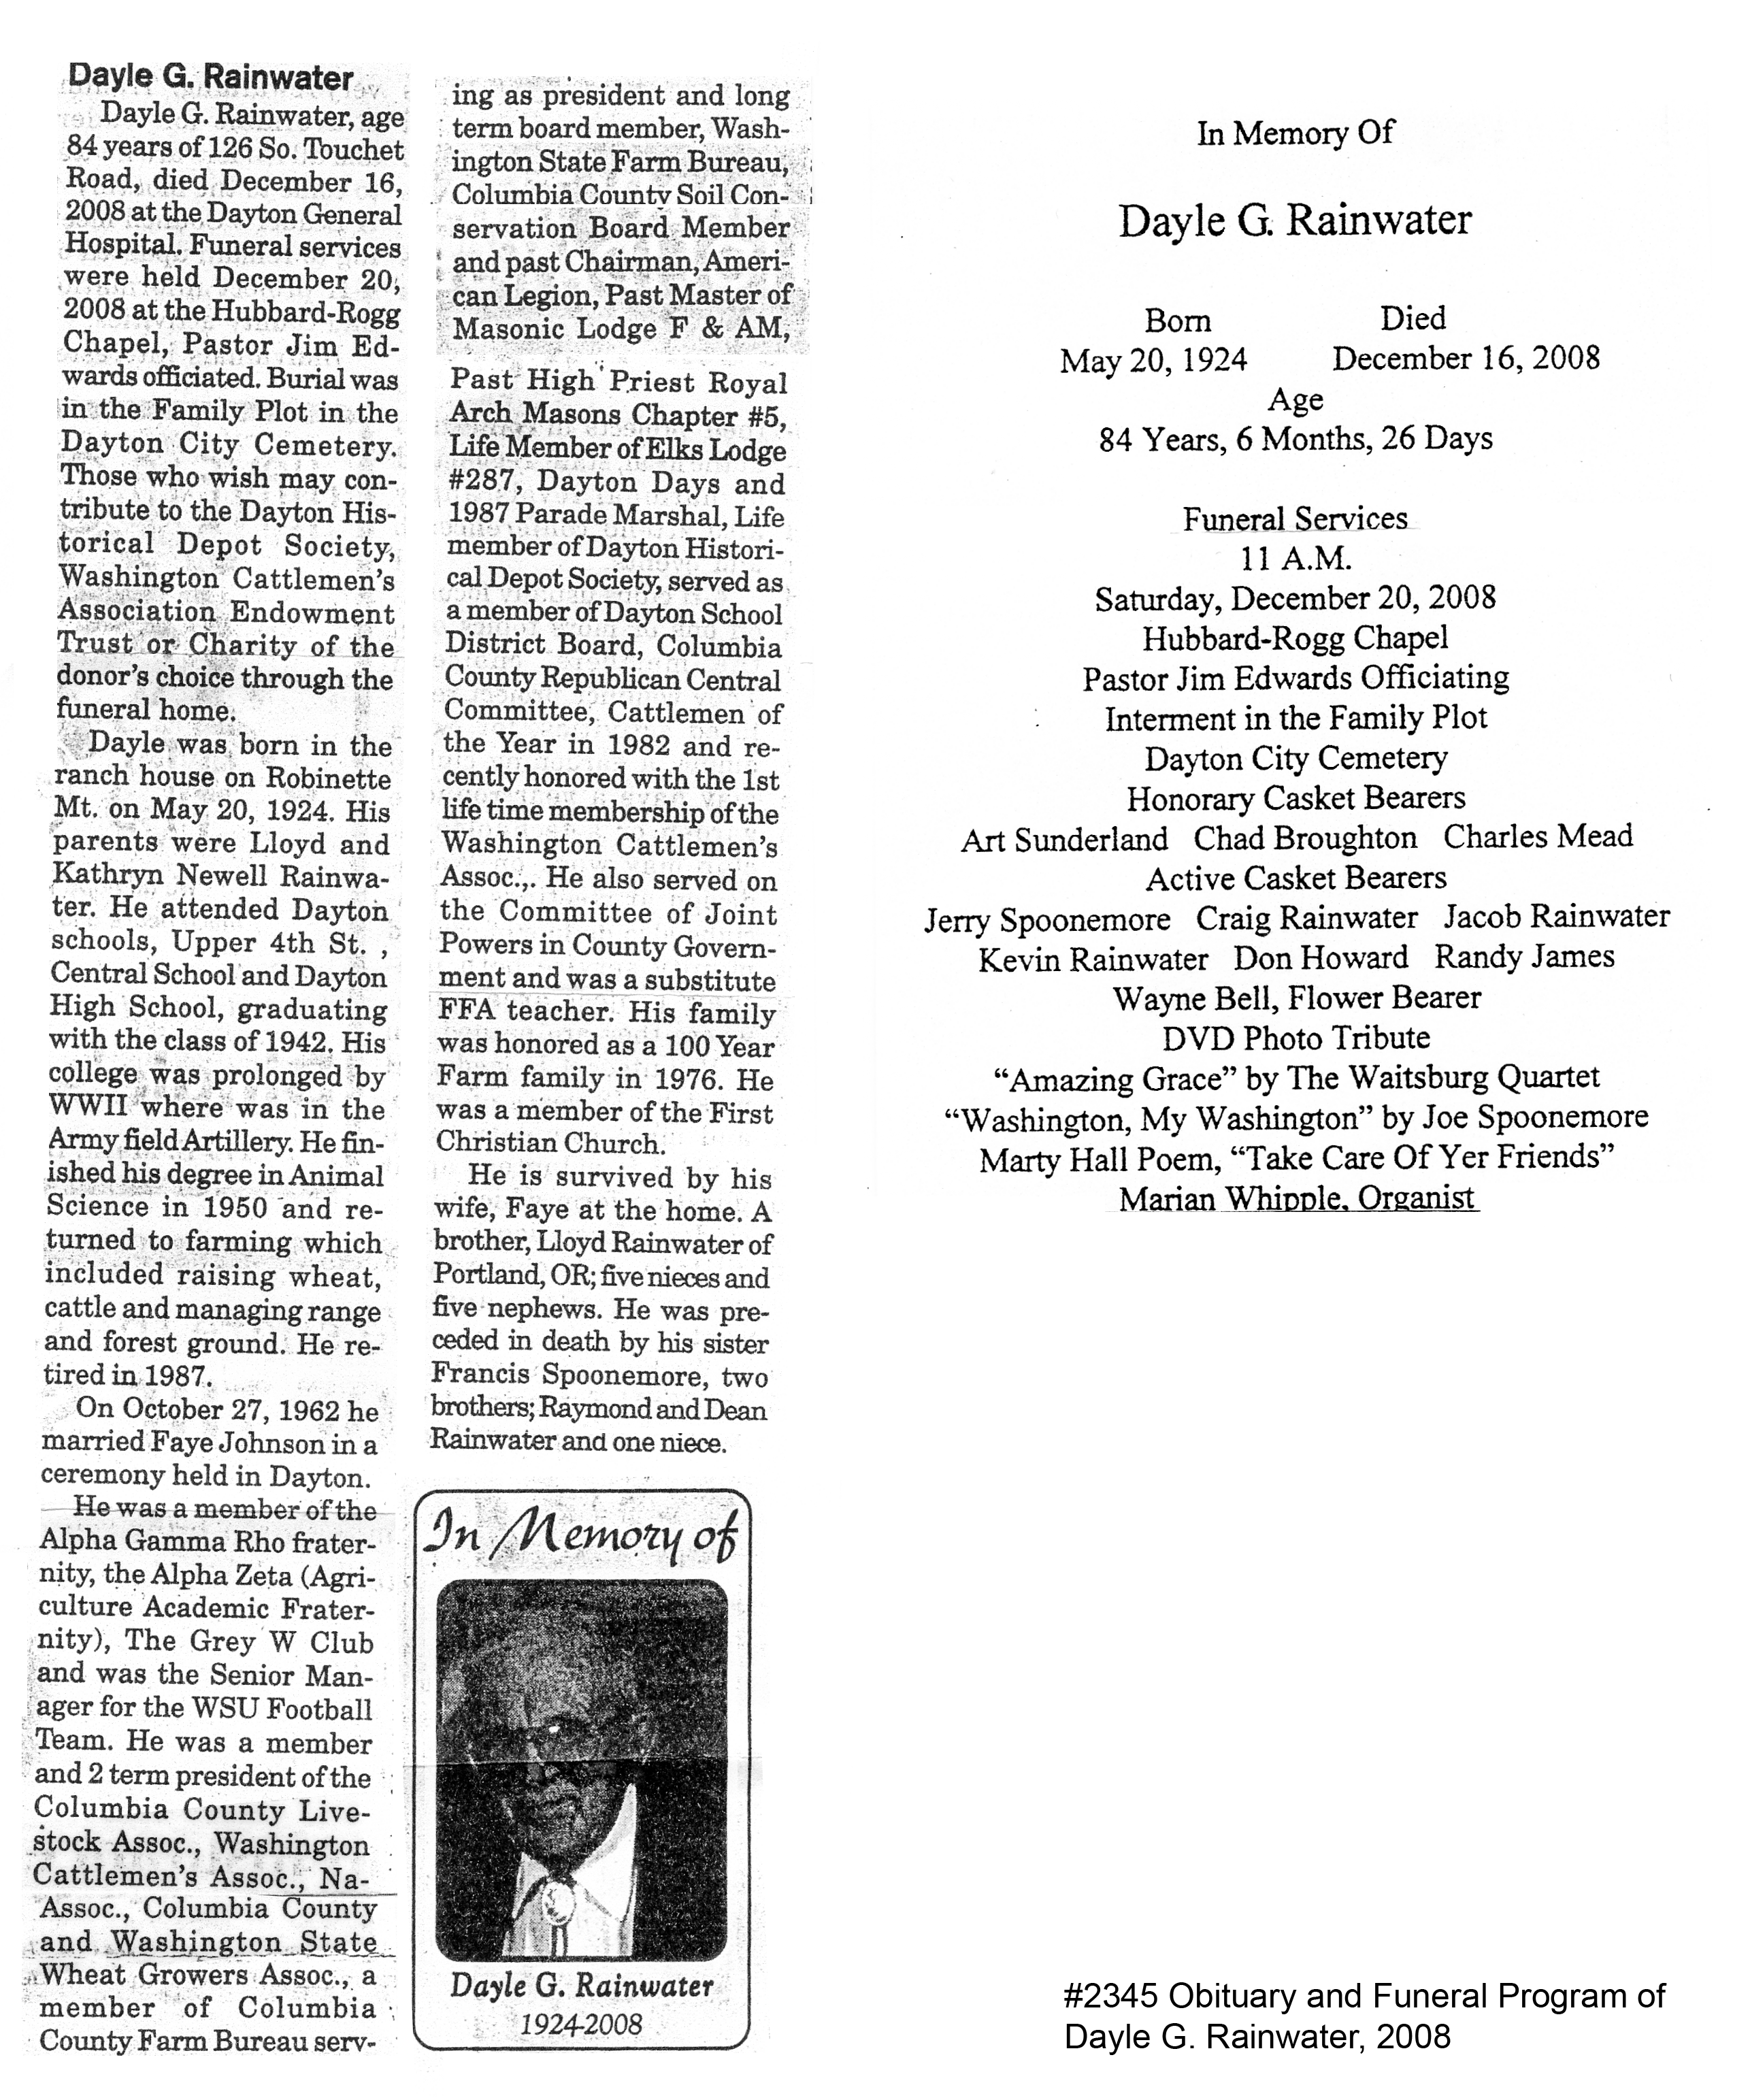 ... Obituary and funeral program; Dayle G. Rainwater, ...